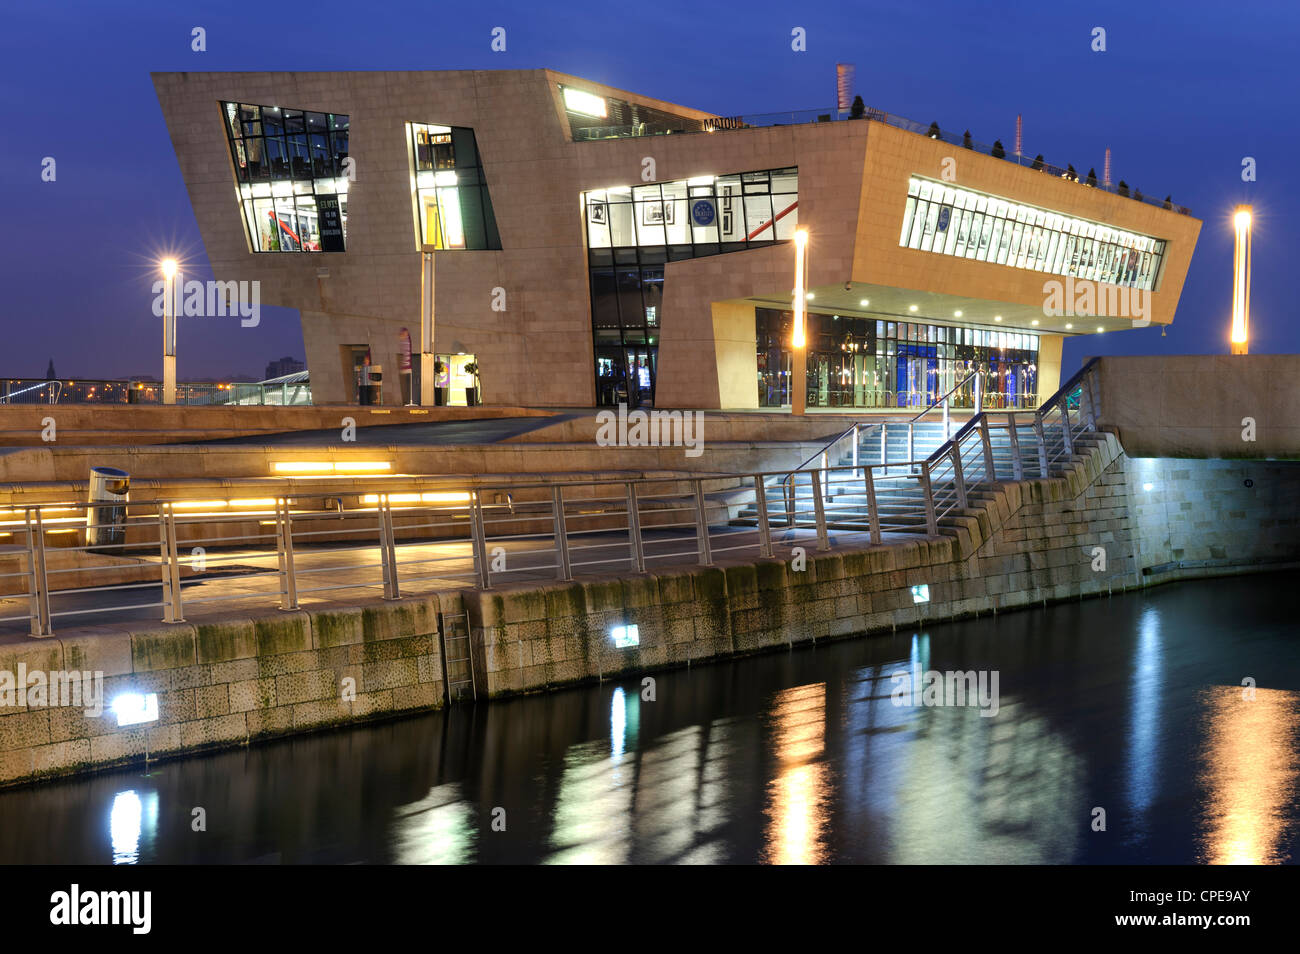 Mersey Ferries offices and Beatles Museum, Pier Head, Liverpool, Merseyside, England, United Kingdom, Europe - Stock Image